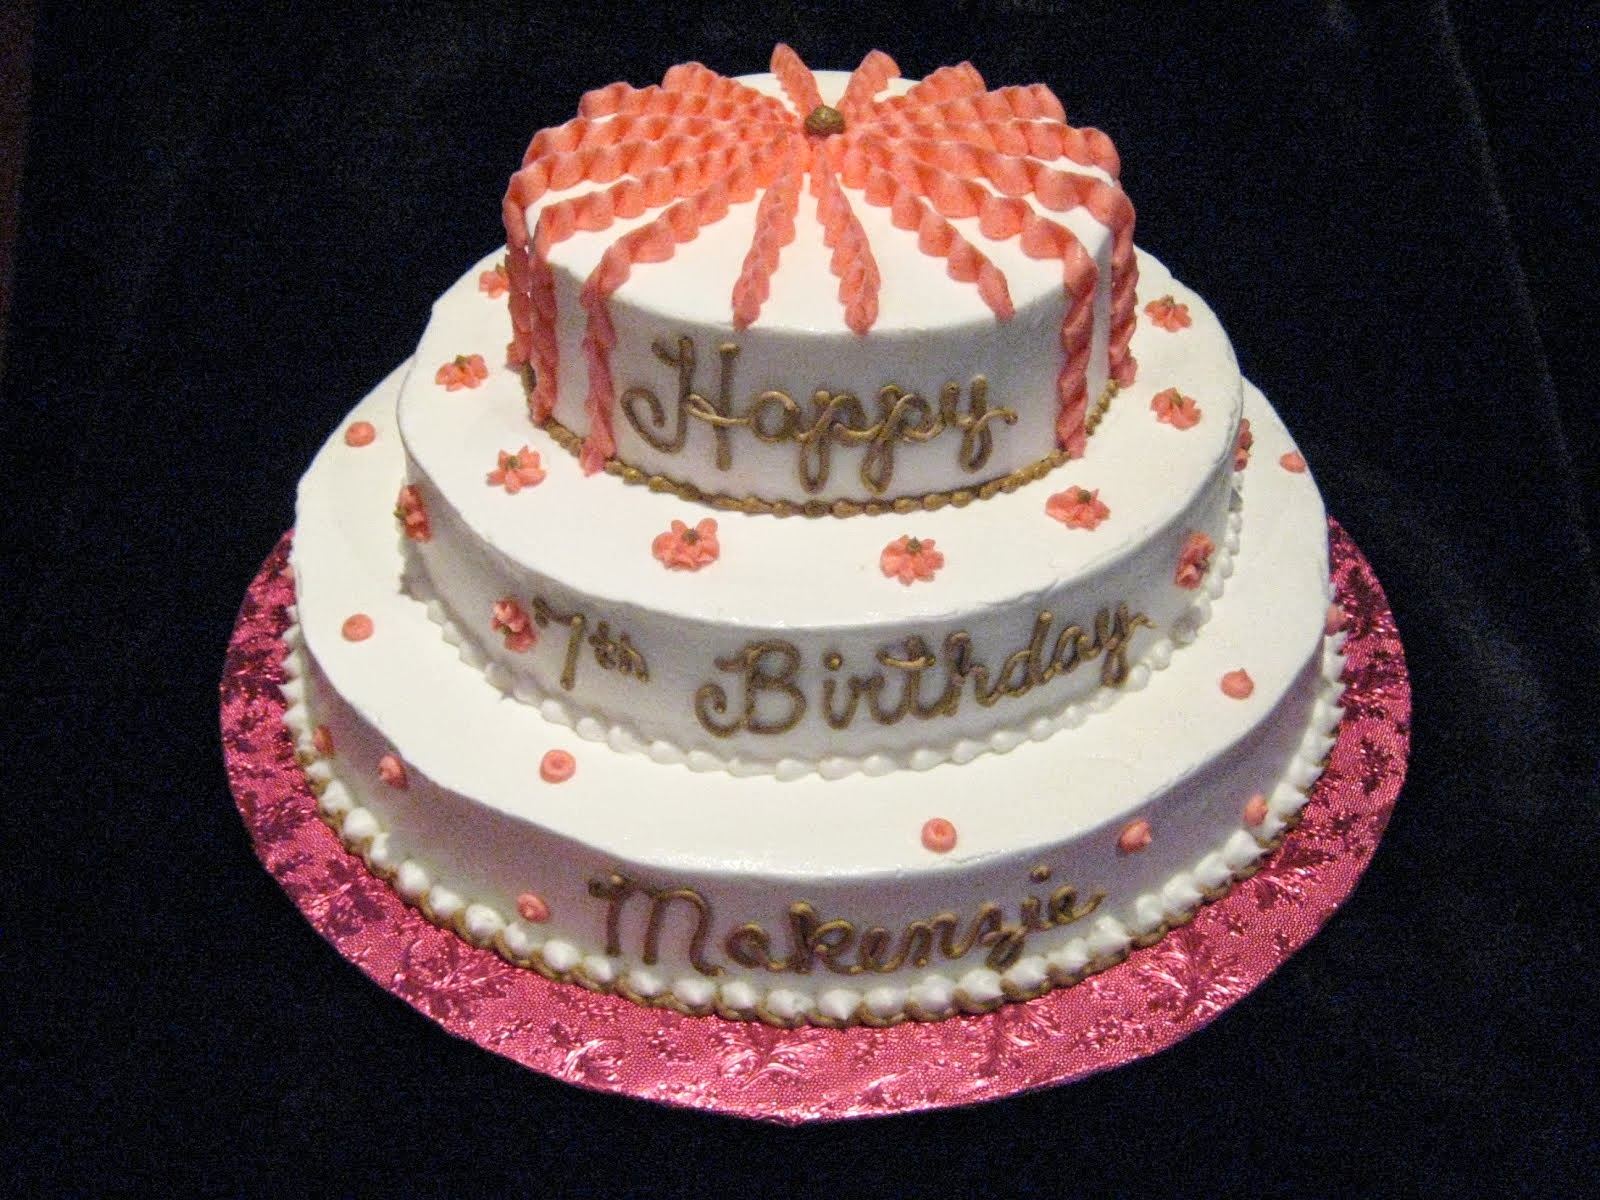 Birthday Cake Hd Images For Boy : cake birthday: Girl Birthday Cake Fun Feminine Way For The